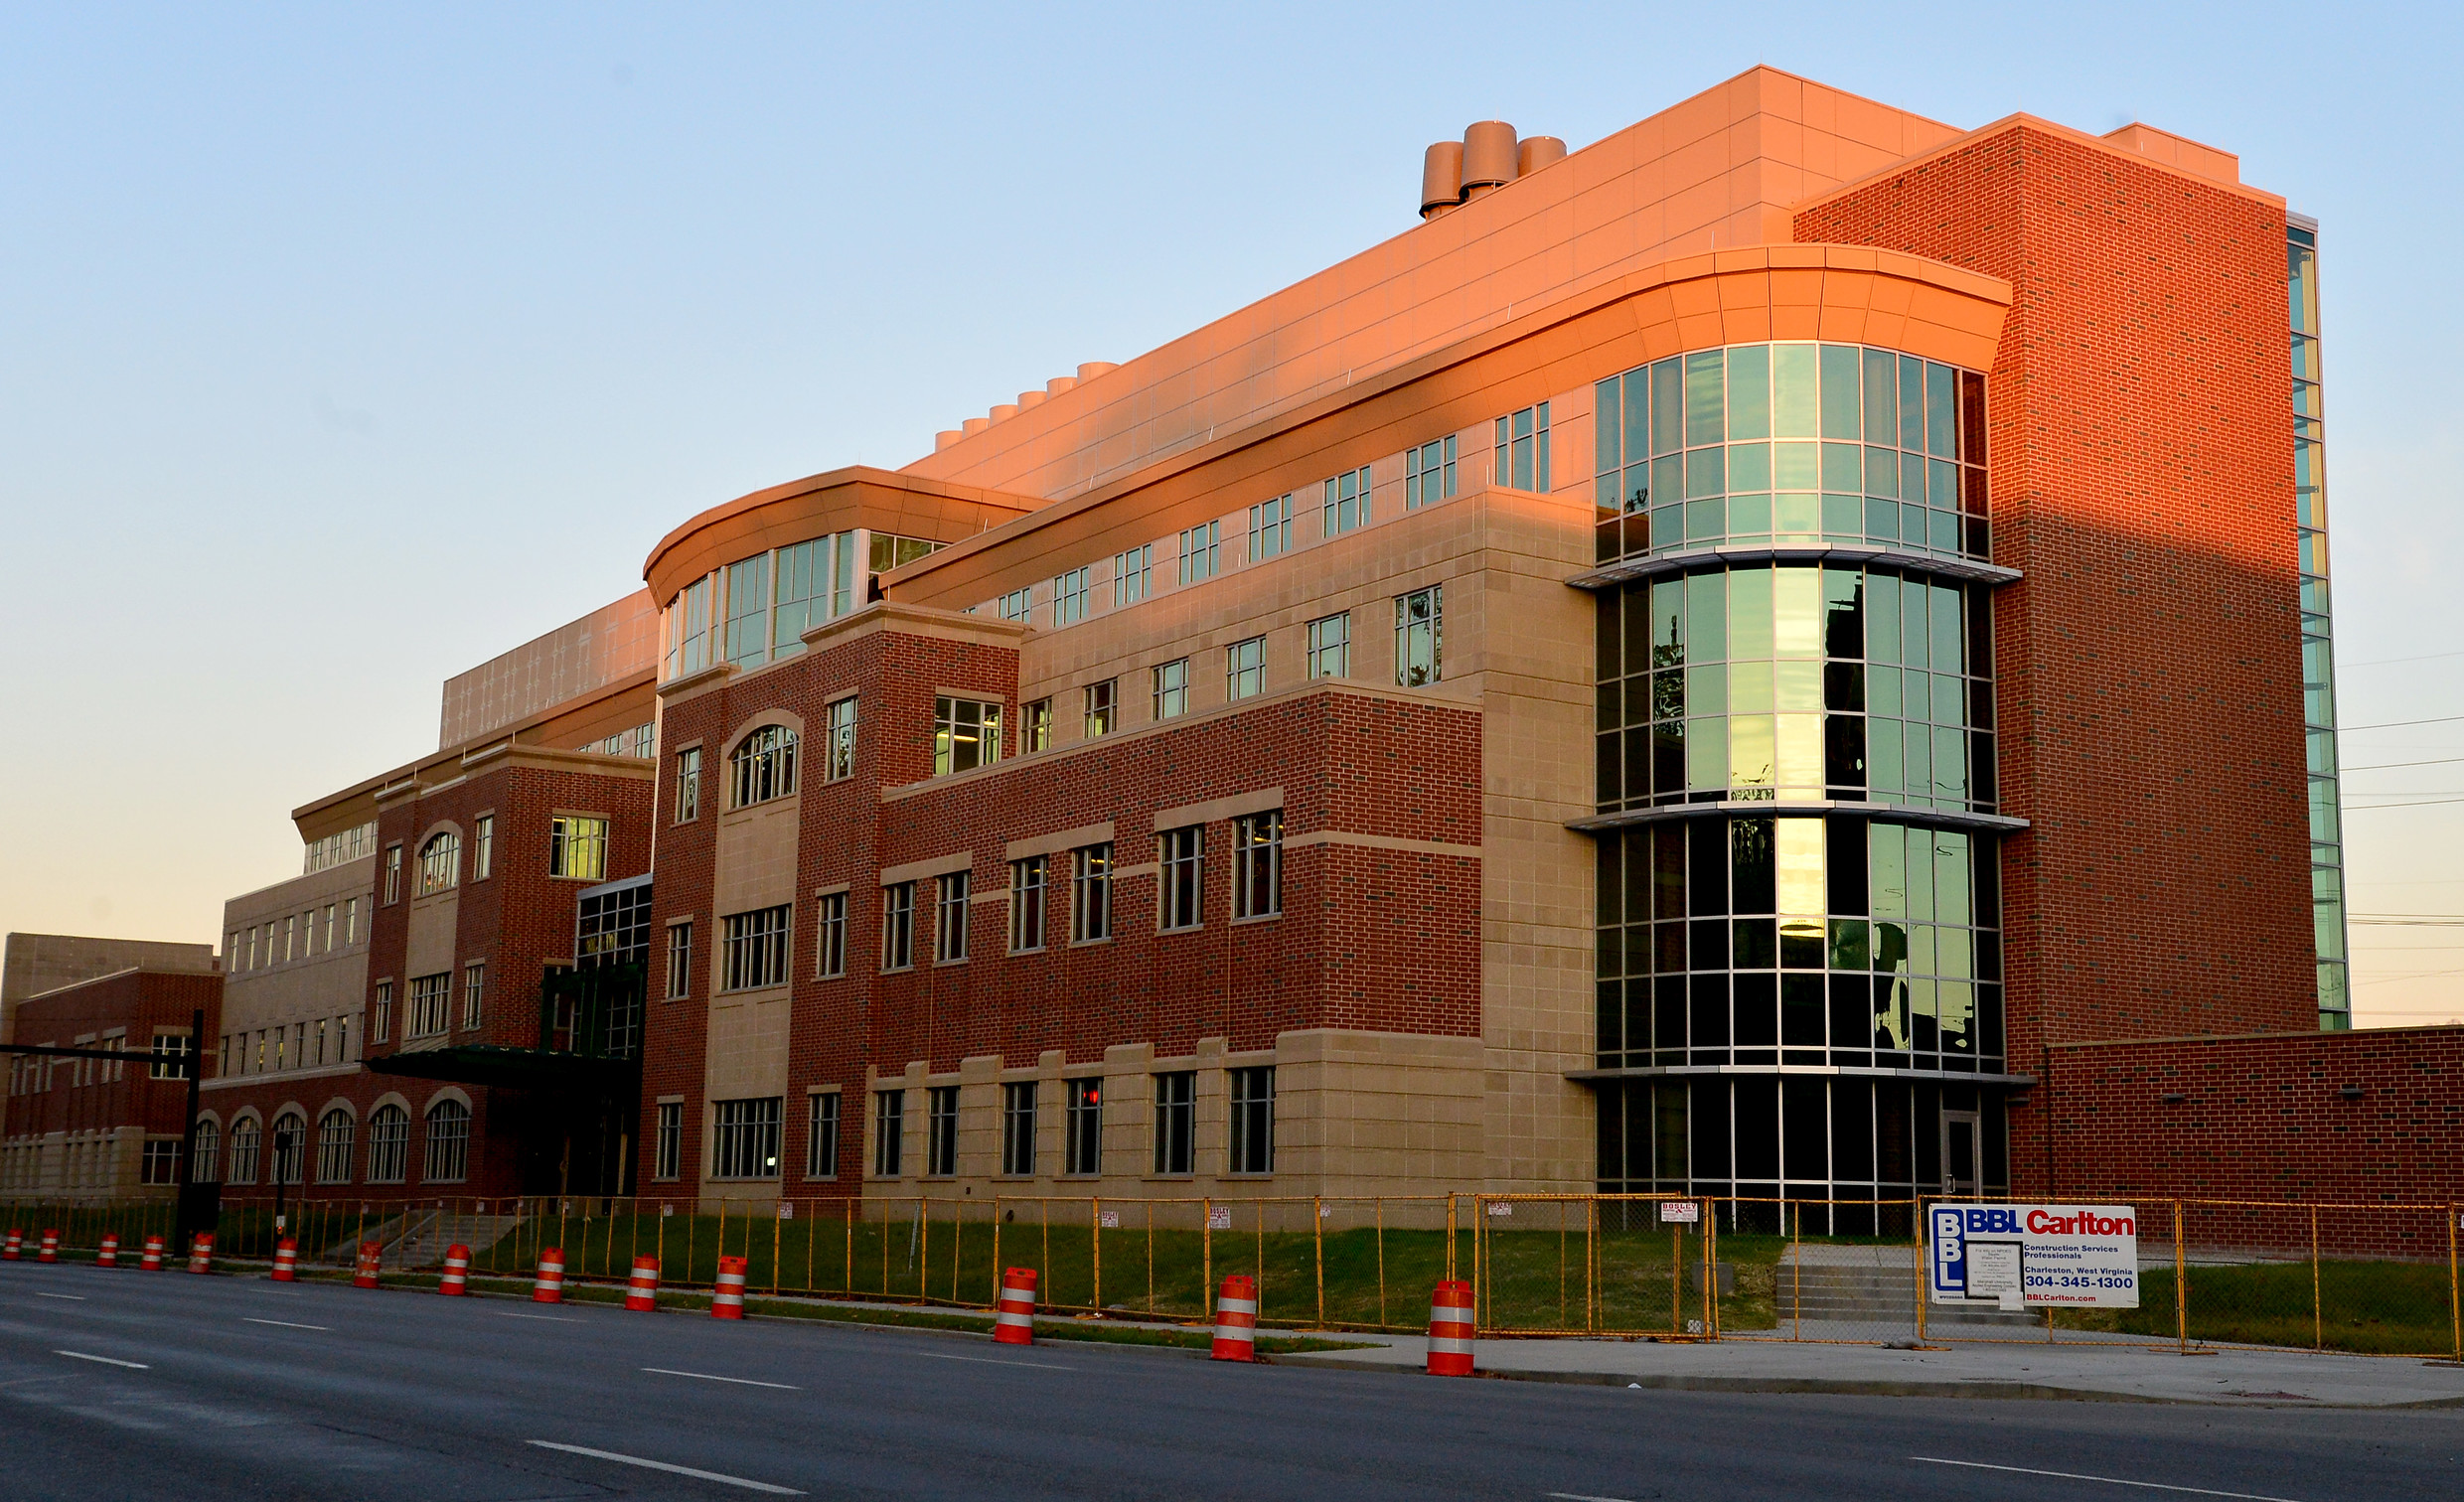 The beautiful new Weisberg Family Applied Engineering Complex along 3rd Avenue in Huntington, West Virginia